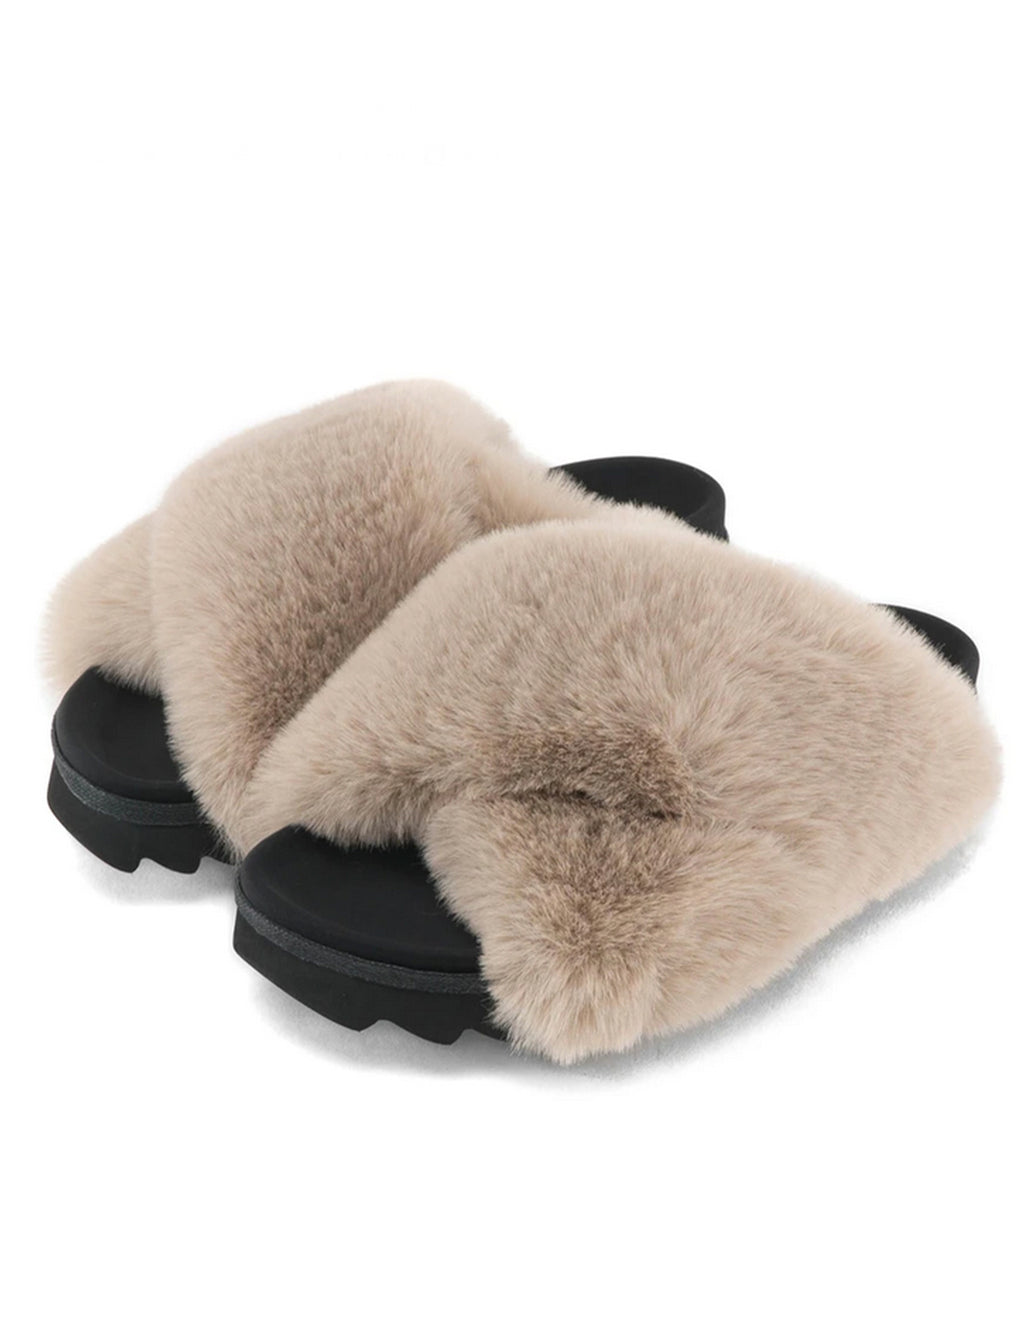 Roam Cloud Faux Fur Slide in Beige